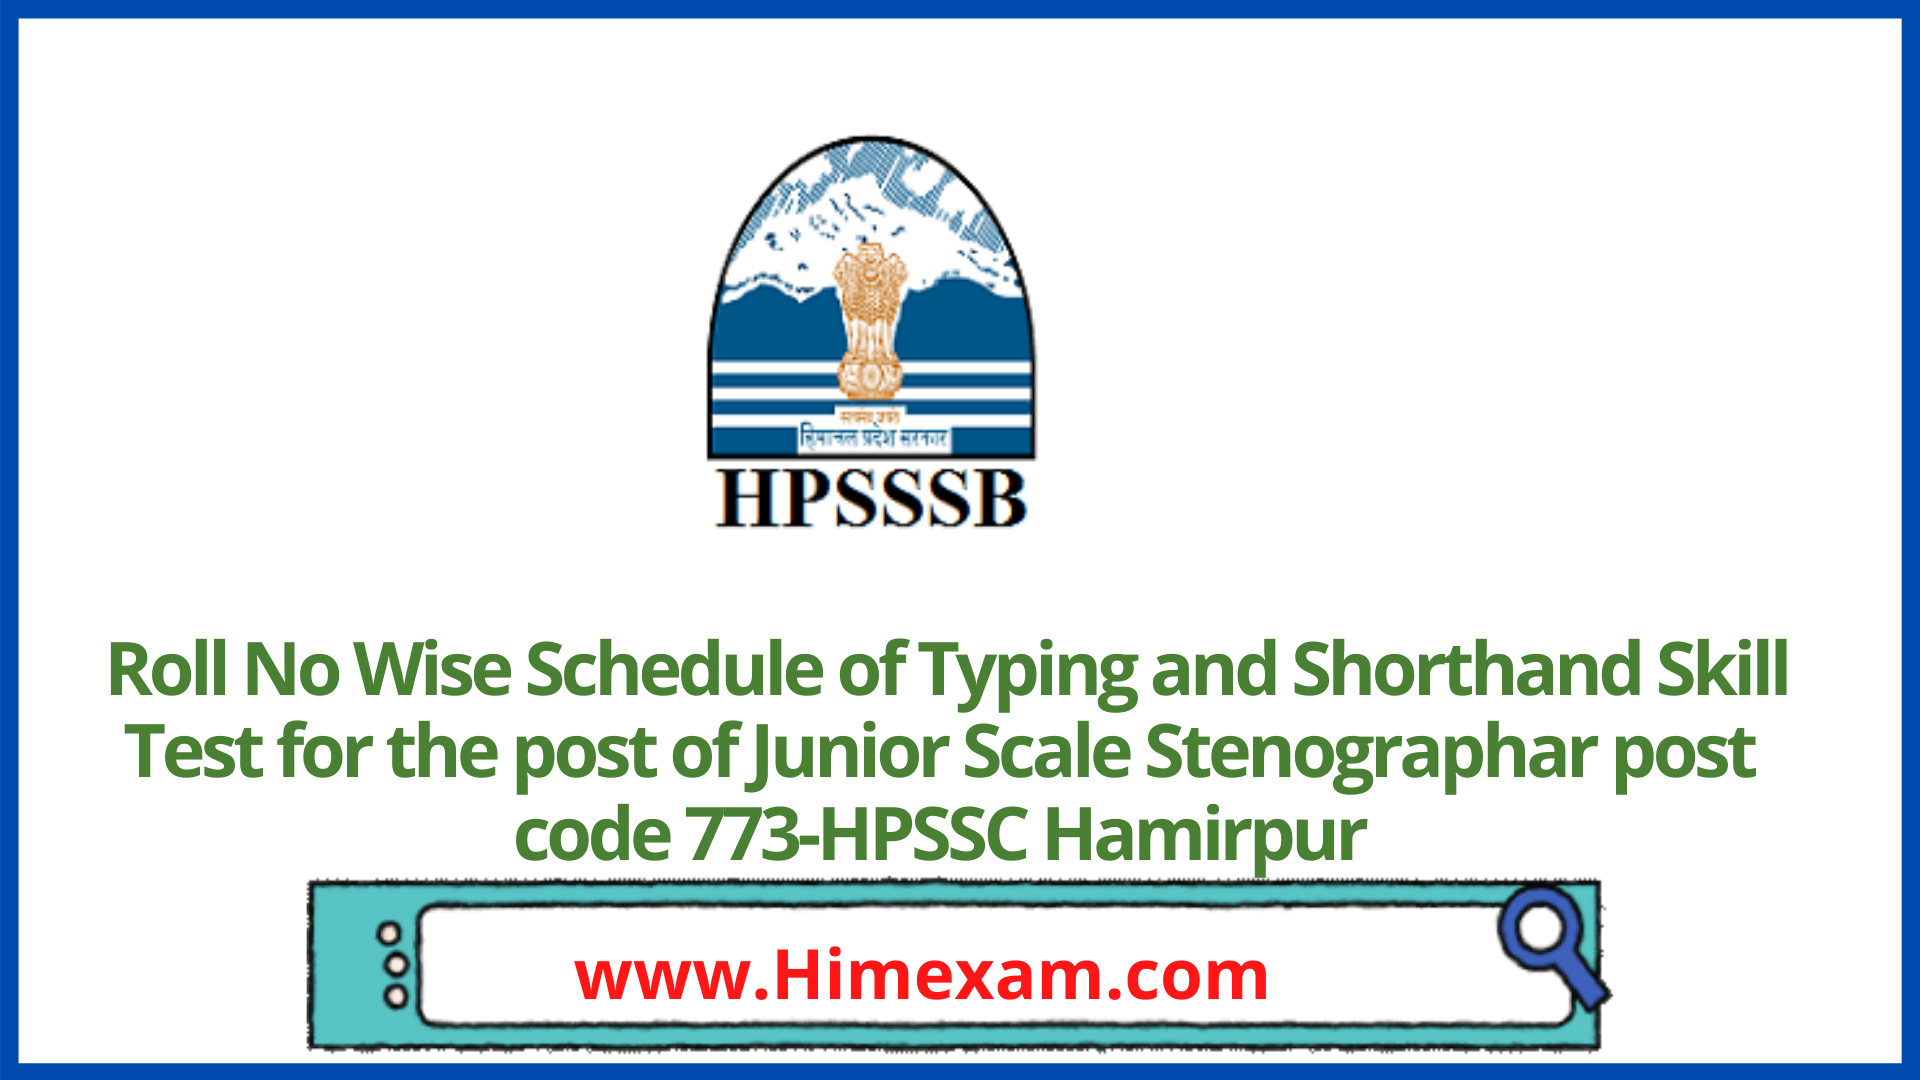 Roll No Wise Schedule of Typing and Shorthand Skill Test for the post of Junior Scale Stenographar post code 773-HPSSC Hamirpur